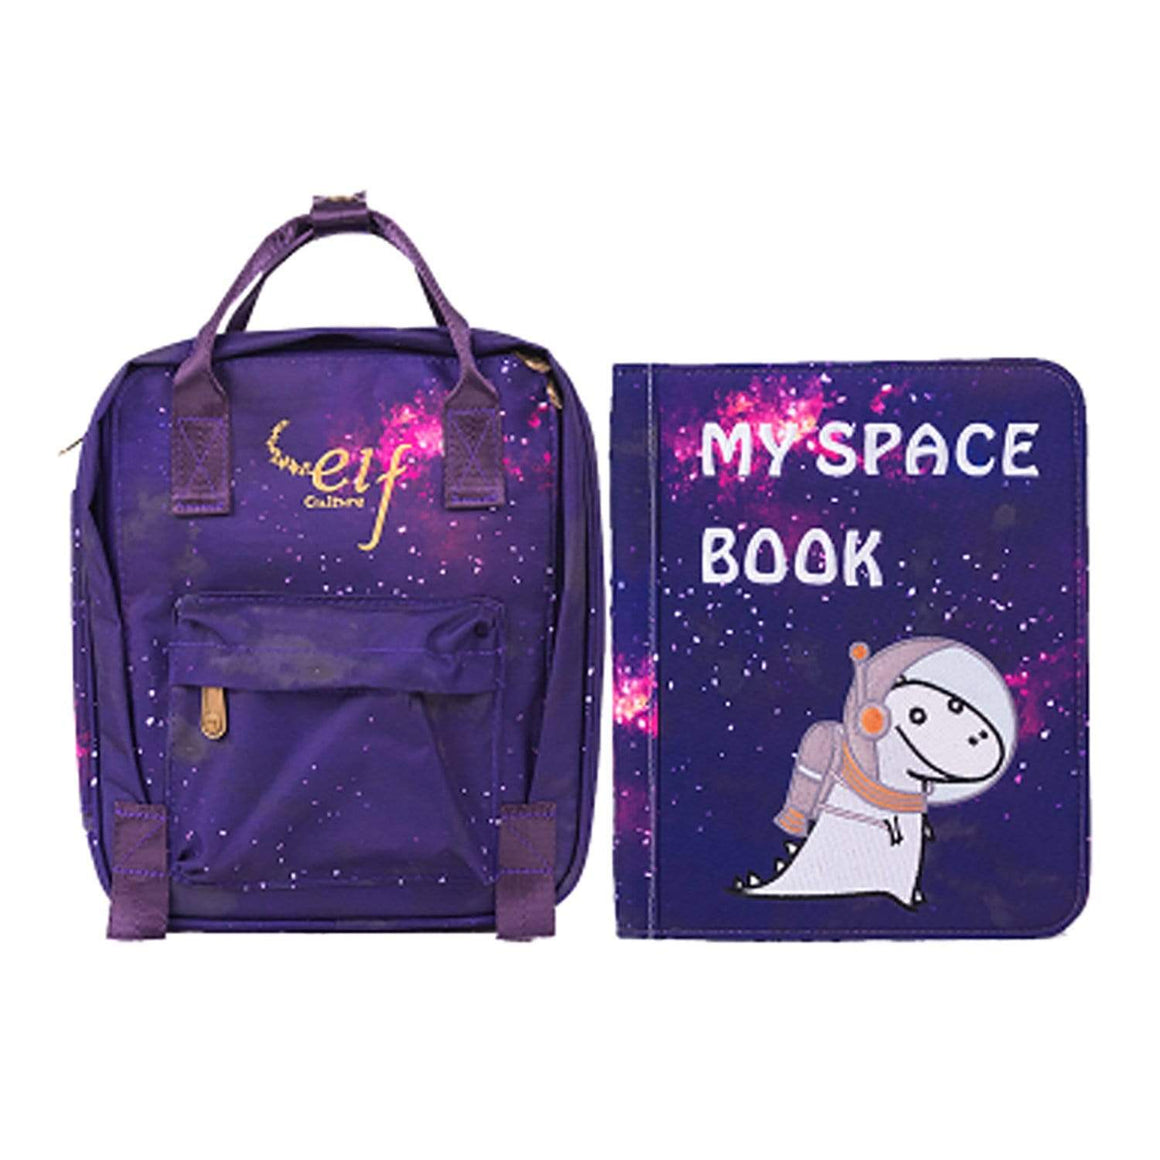 ELF Culture My First Book 3 – My Space Book - Galaxy Purple 太空系列 (紫色)